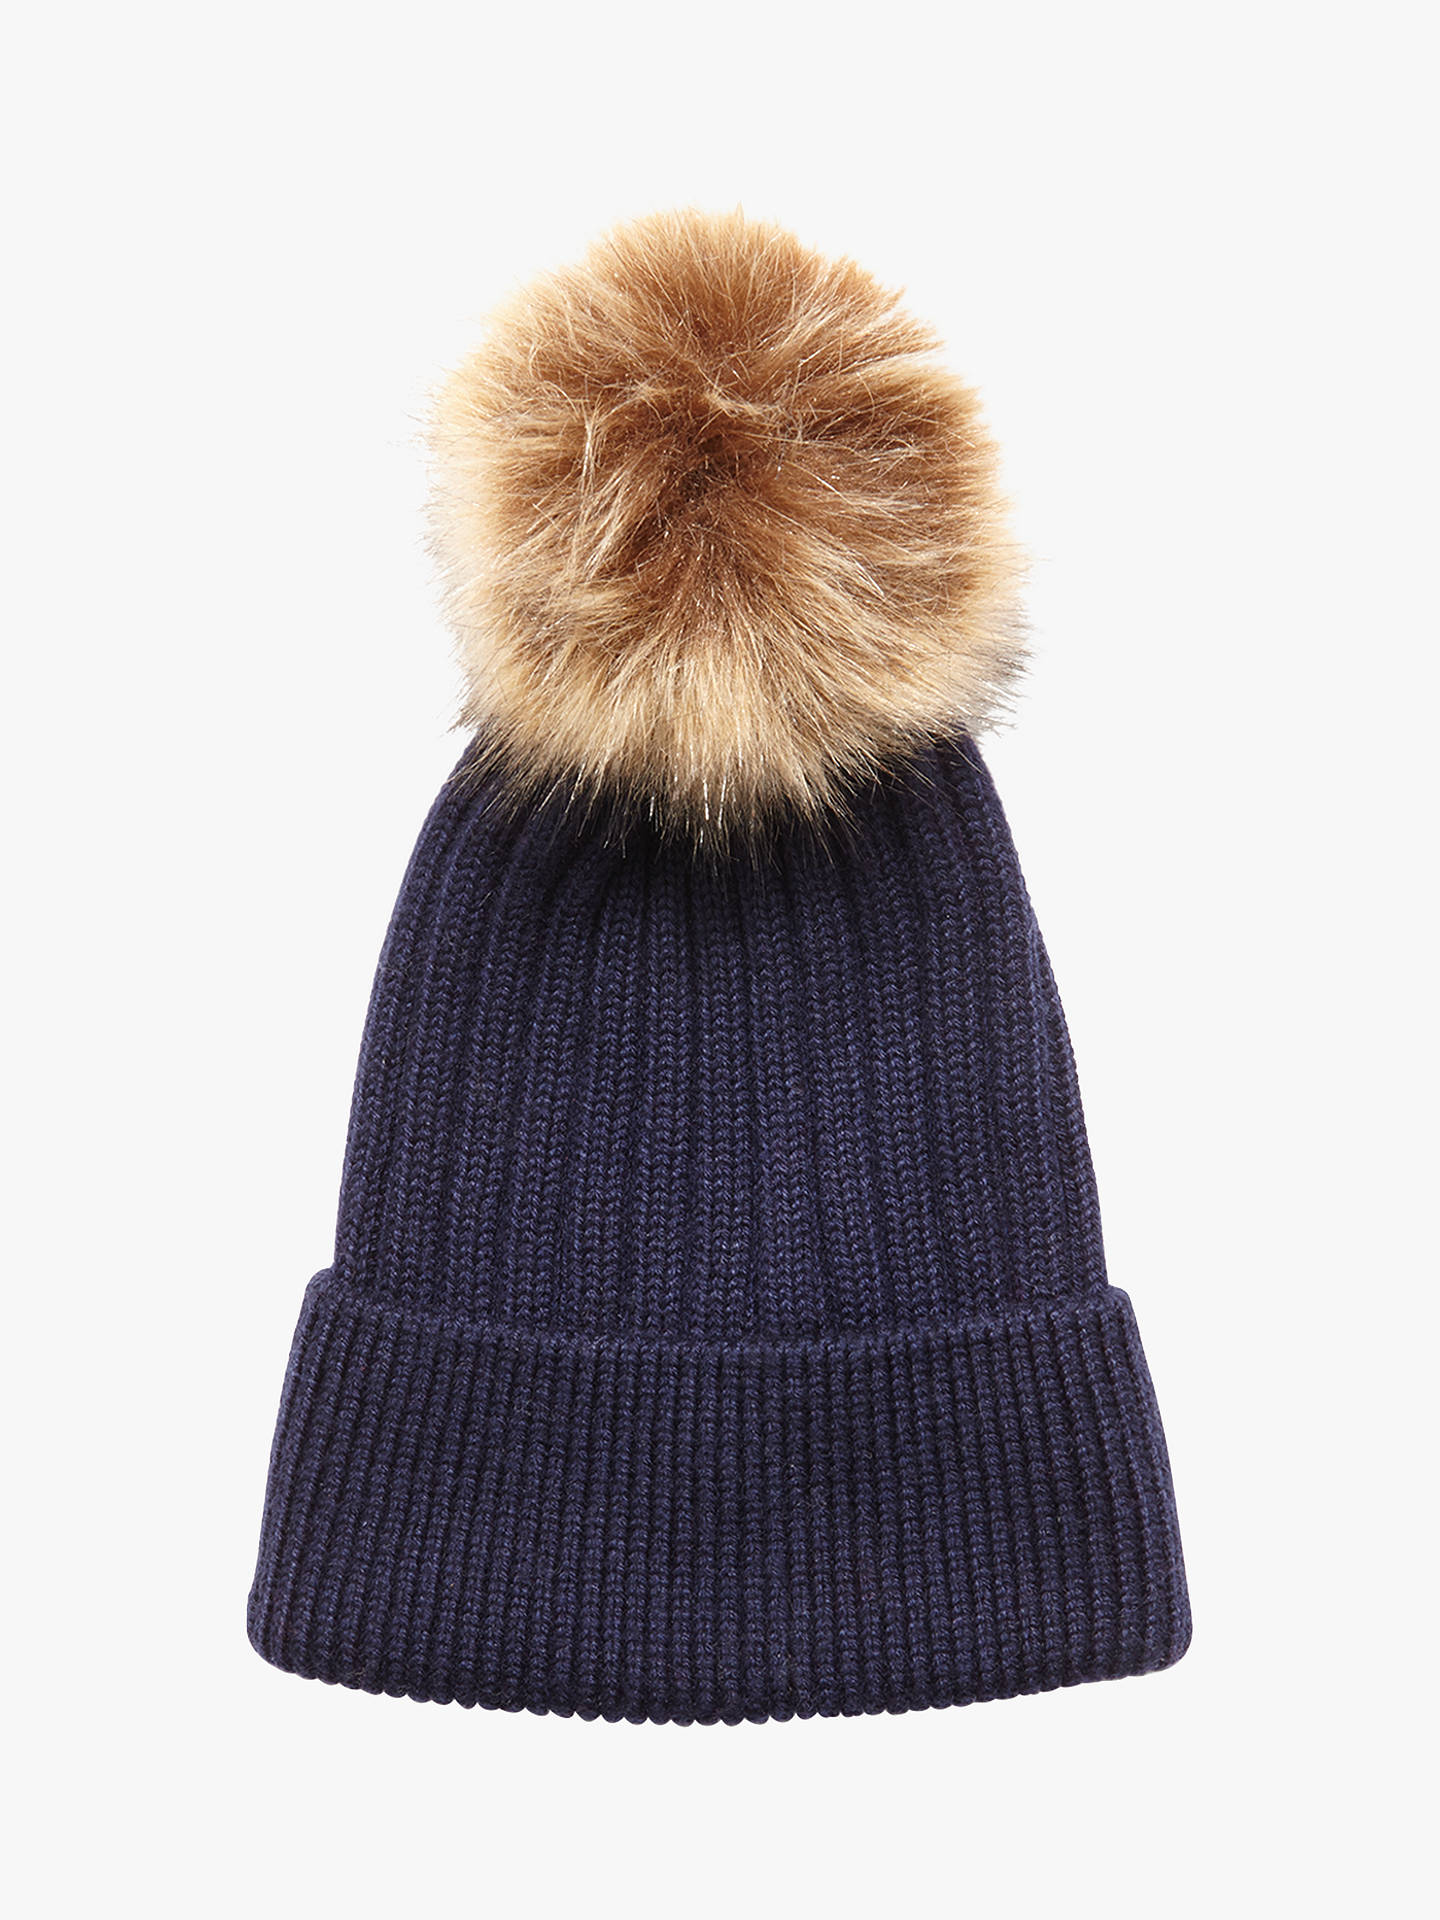 cdbdad854fc Phase Eight Tori Pom Pom Beanie Hat at John Lewis   Partners